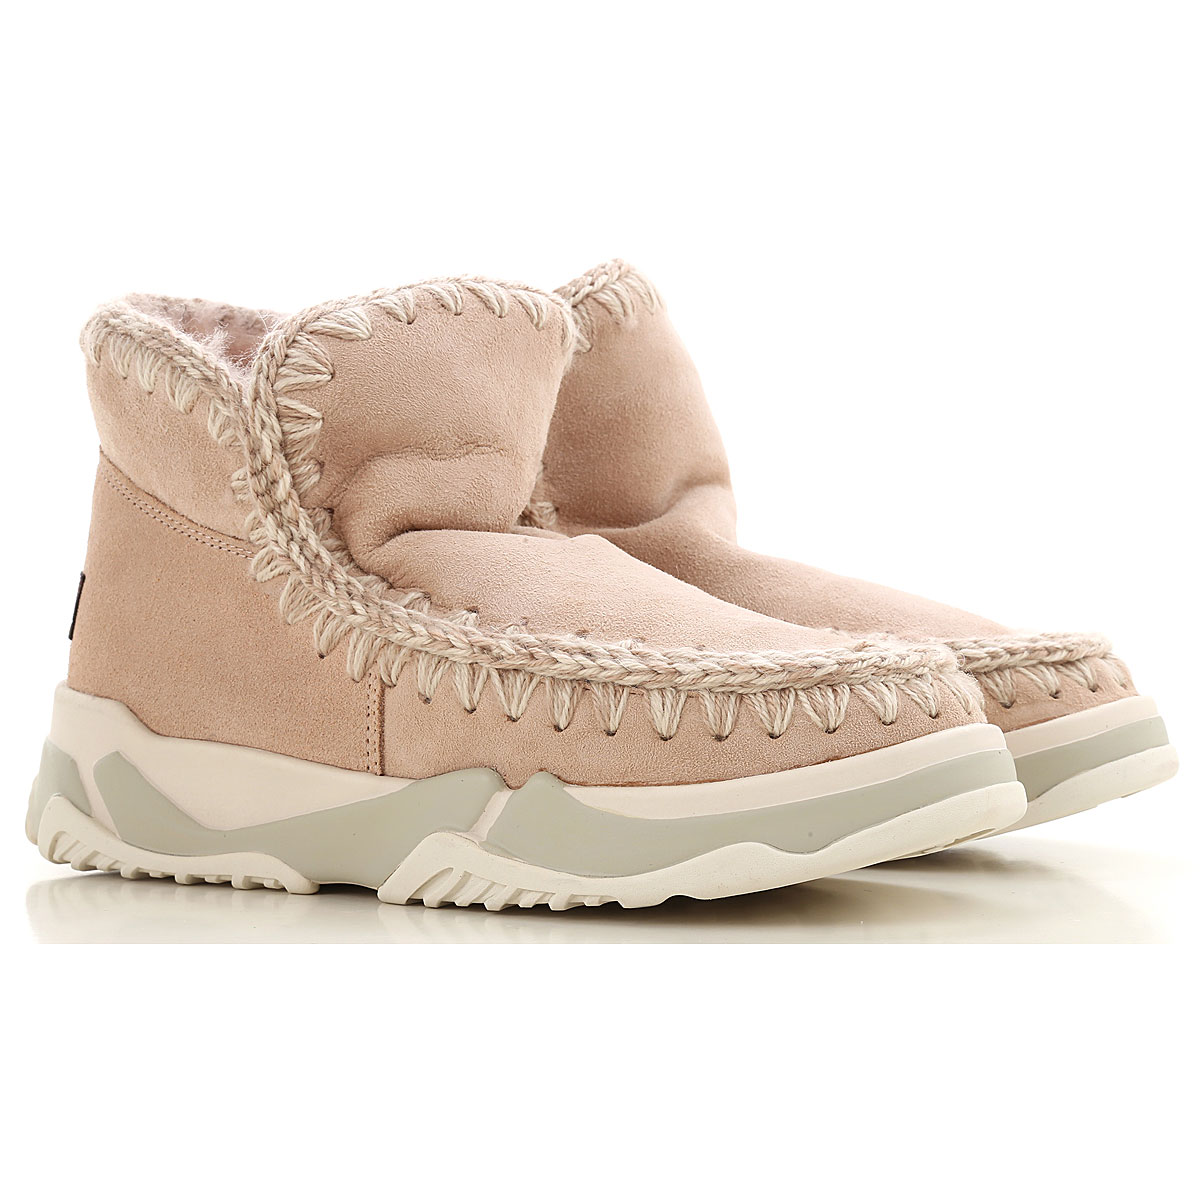 Mou Boots for Women, Booties On Sale, Rose, Suede leather, 2019, EUR 36 - UK 3 - USA 5.5 EUR 37 - UK 4 - USA 6.5 EUR 38 - UK 5 - USA 7.5 EUR 39 - UK 6